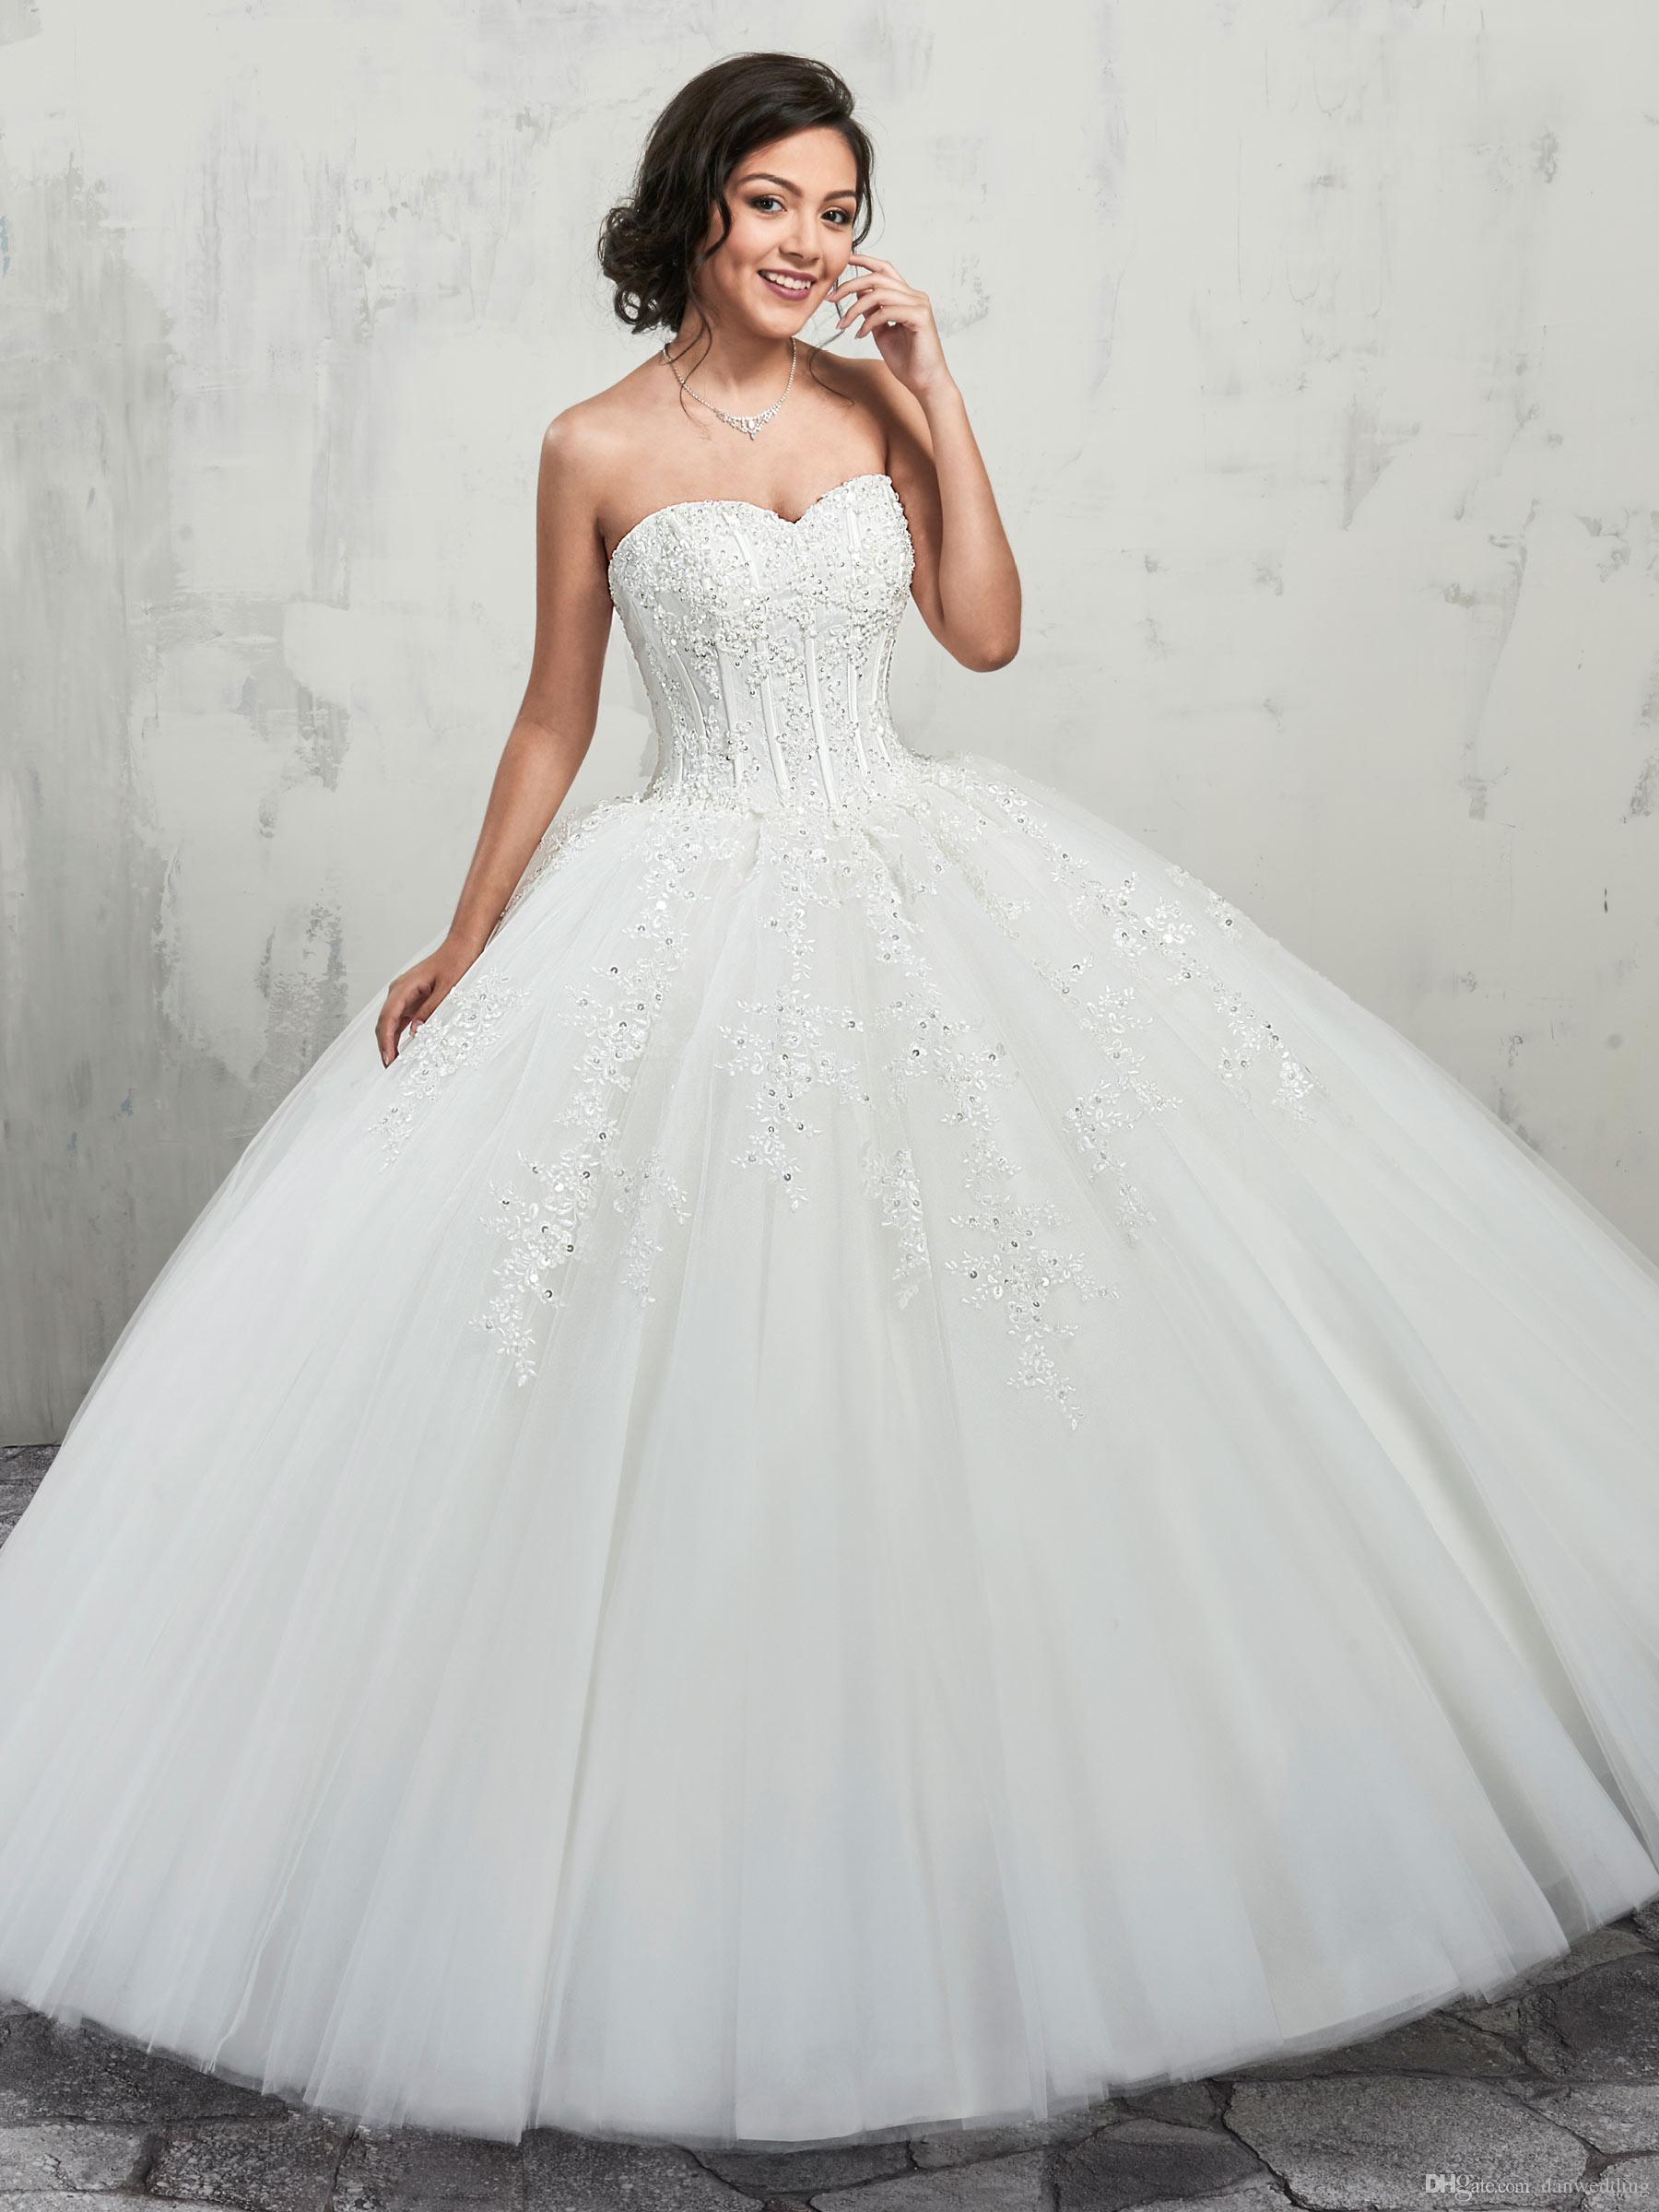 ac22801589f Grace White Sweetheart Applique Beads Ball Gown Wedding Dresses ...